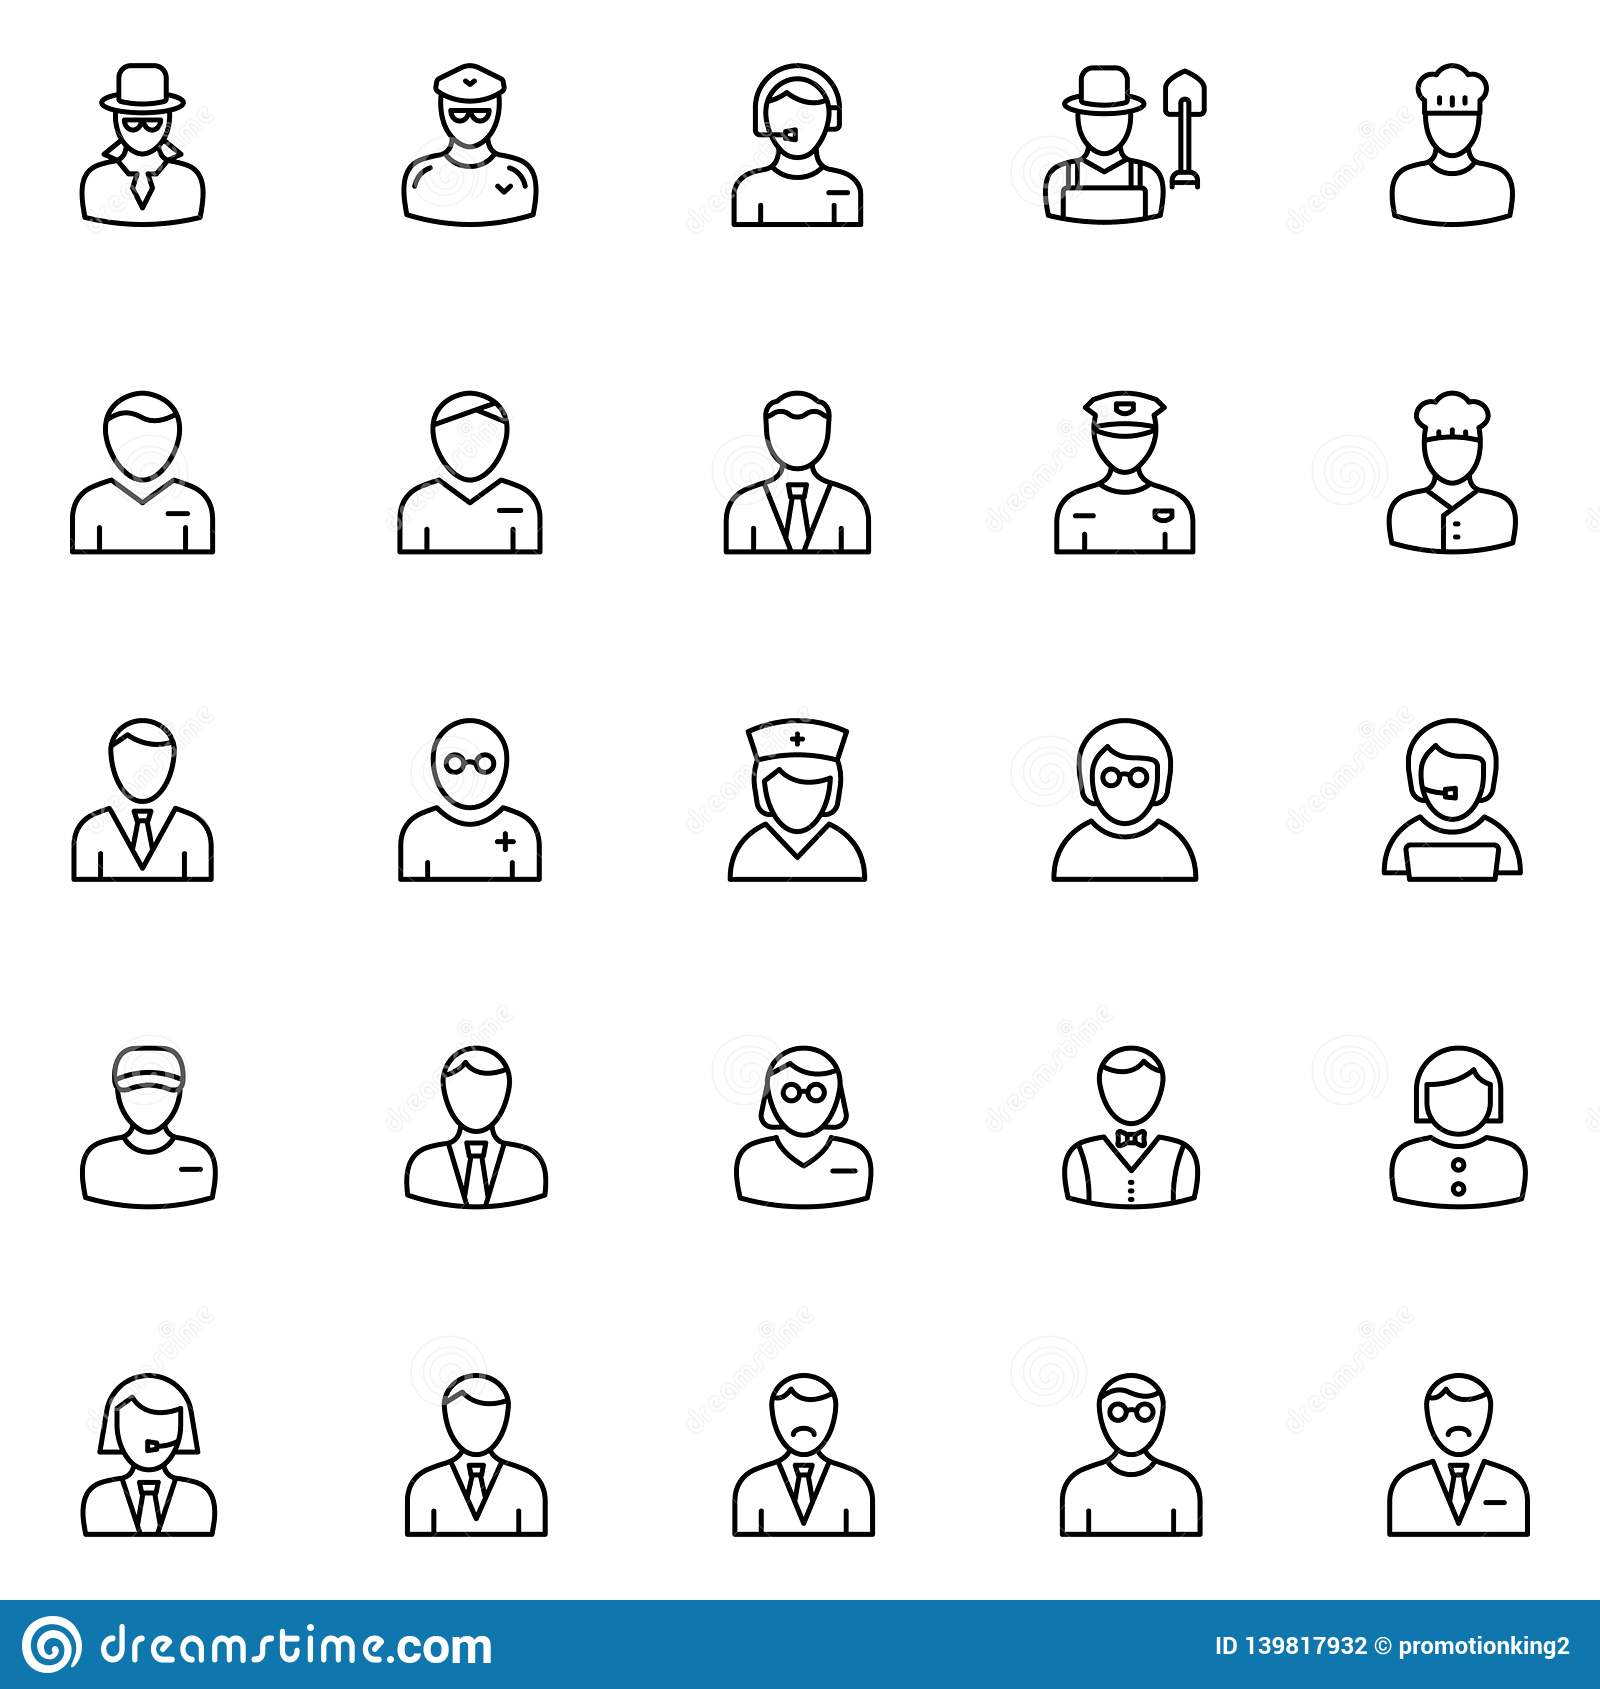 Professional Vector Icons Set that can easily modify or edit